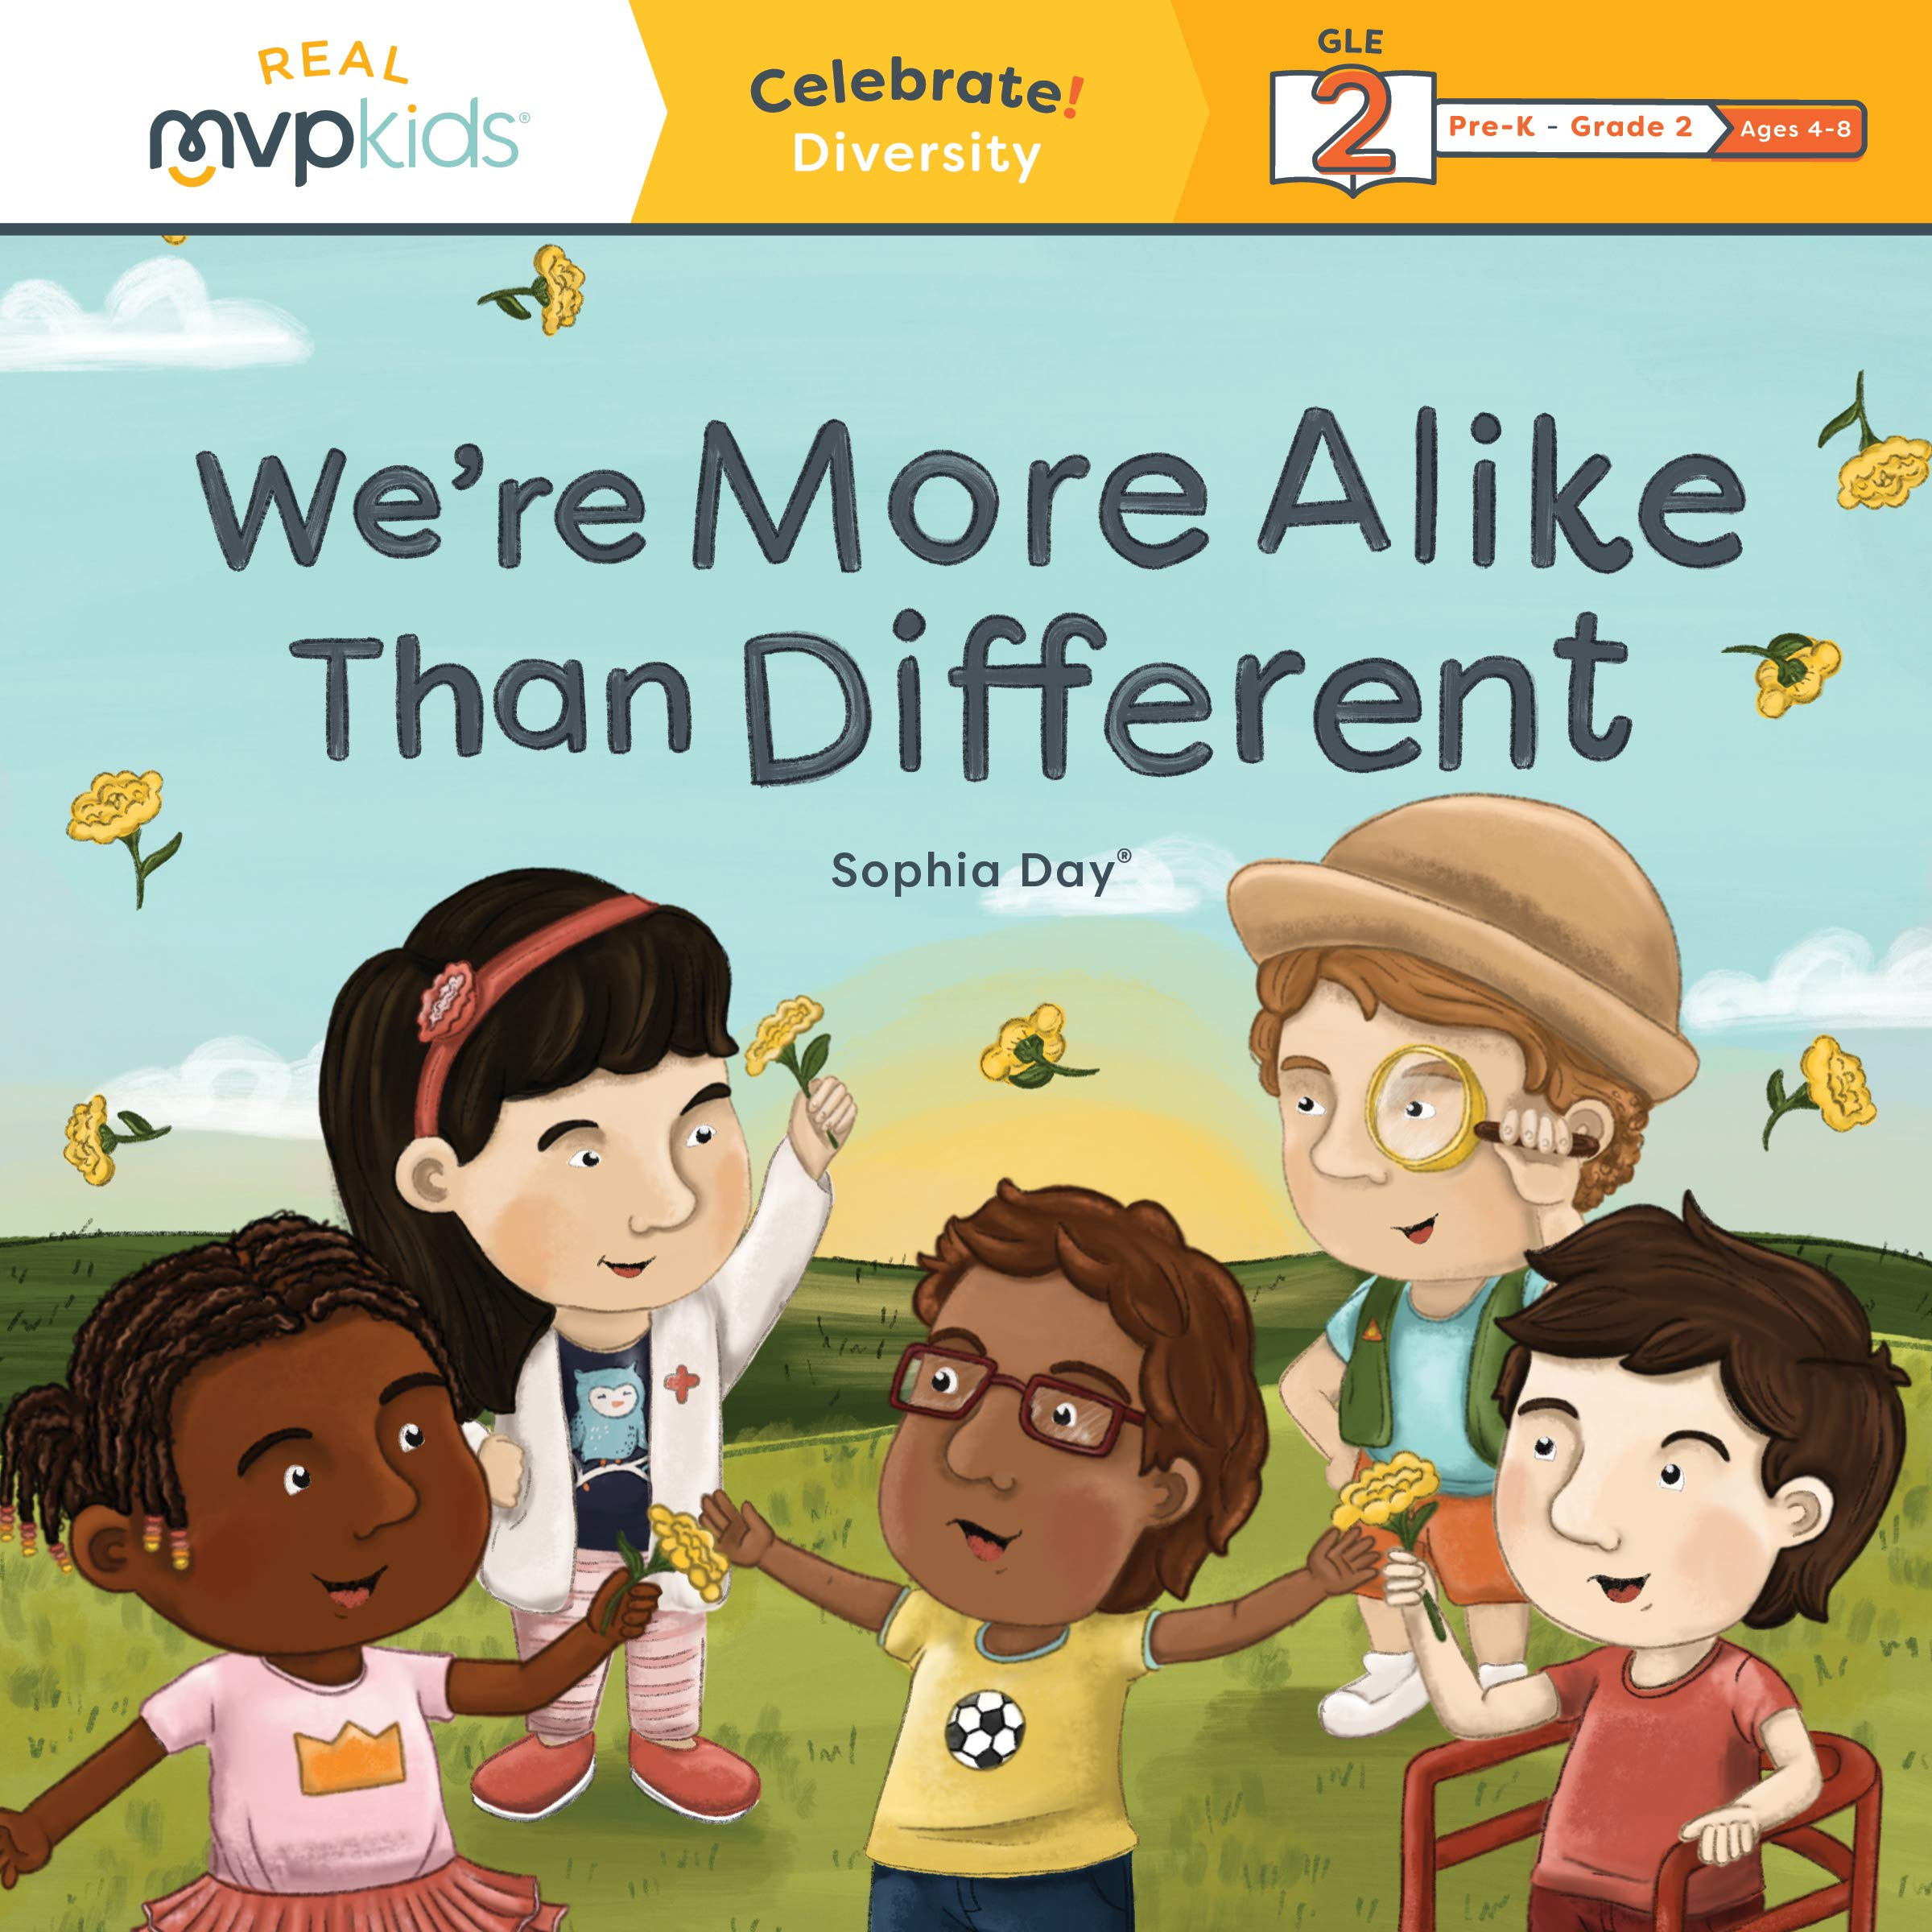 adf9f6a35f8 We re More Alike Than Different  Celebrate! Diversity  Sophia Day ...